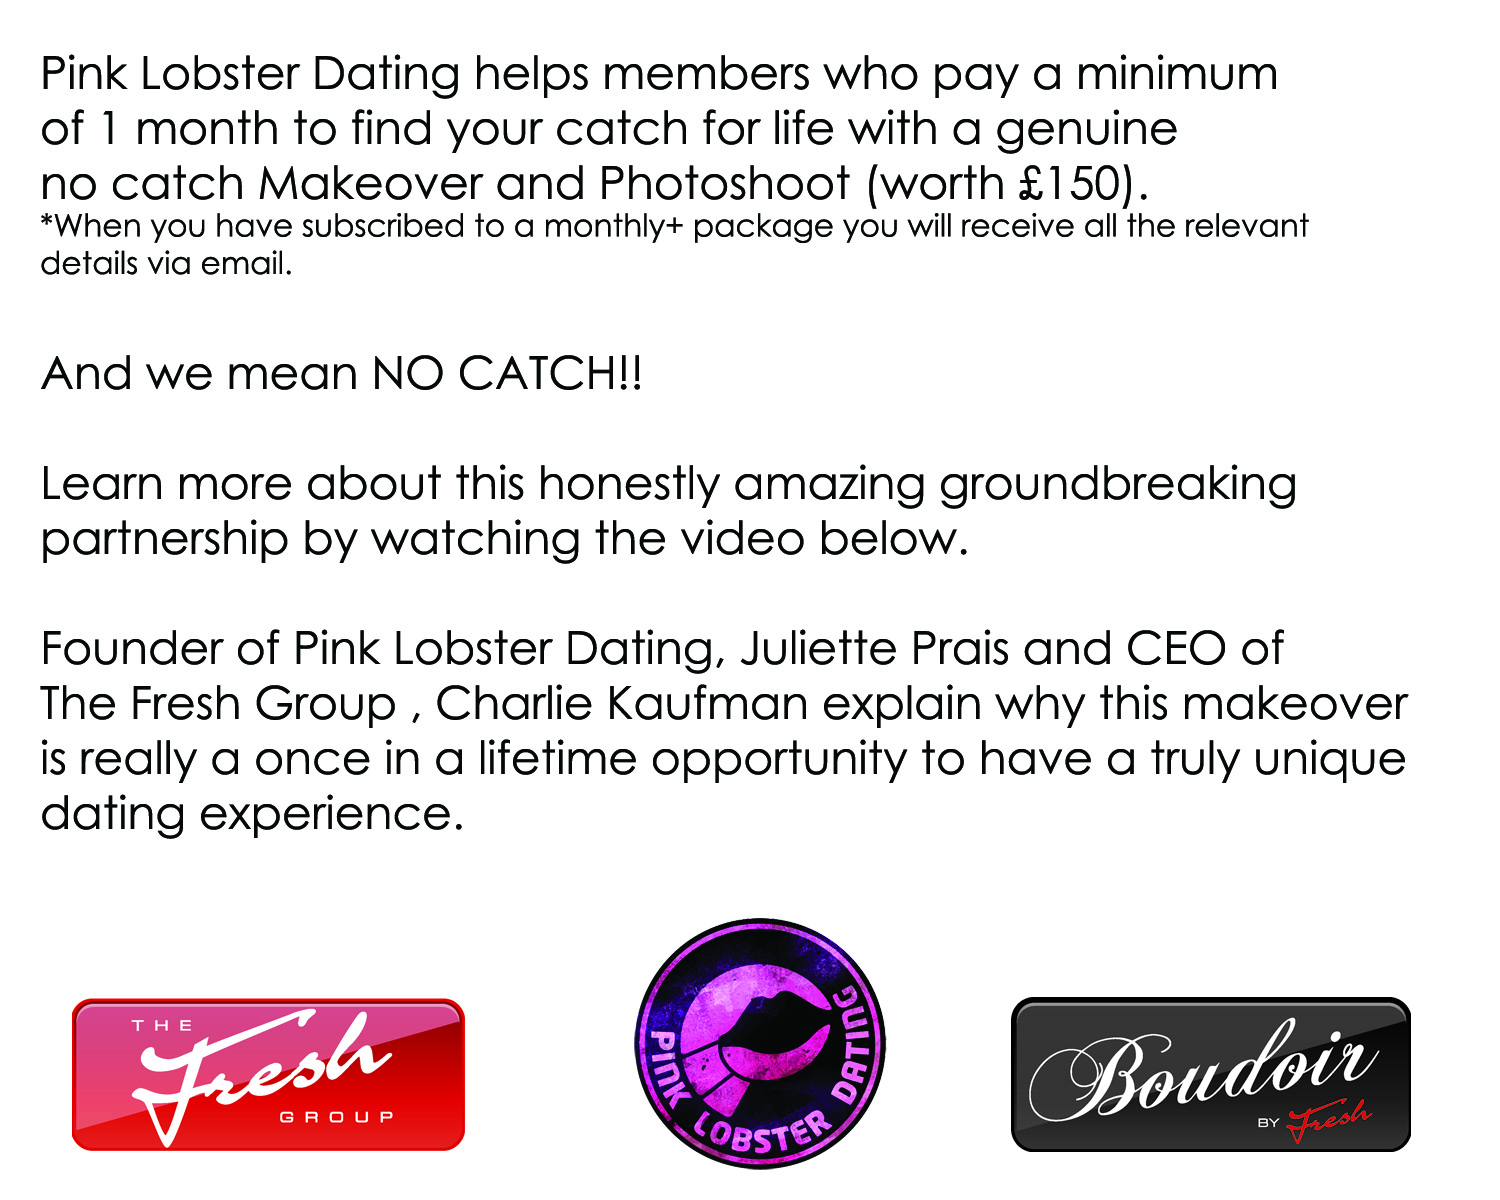 Pink Lobster Dating helps members who pay a minimum of 1 month to find your catch for life with a genuine  no catch Makeover and Photoshoot (worth £150).  And we mean NO CATCH!!  Learn more about this honestly amazing groundbreaking partnership by watching the video below.  Directors of Pink Lobster Dating, Juliette Prais and  Emma Ziff, and CEO of CCC Ltd, Charlie Kaufmann explain why this makeover is really a once in a lifetime opportunity to have a truly unique dating experience.